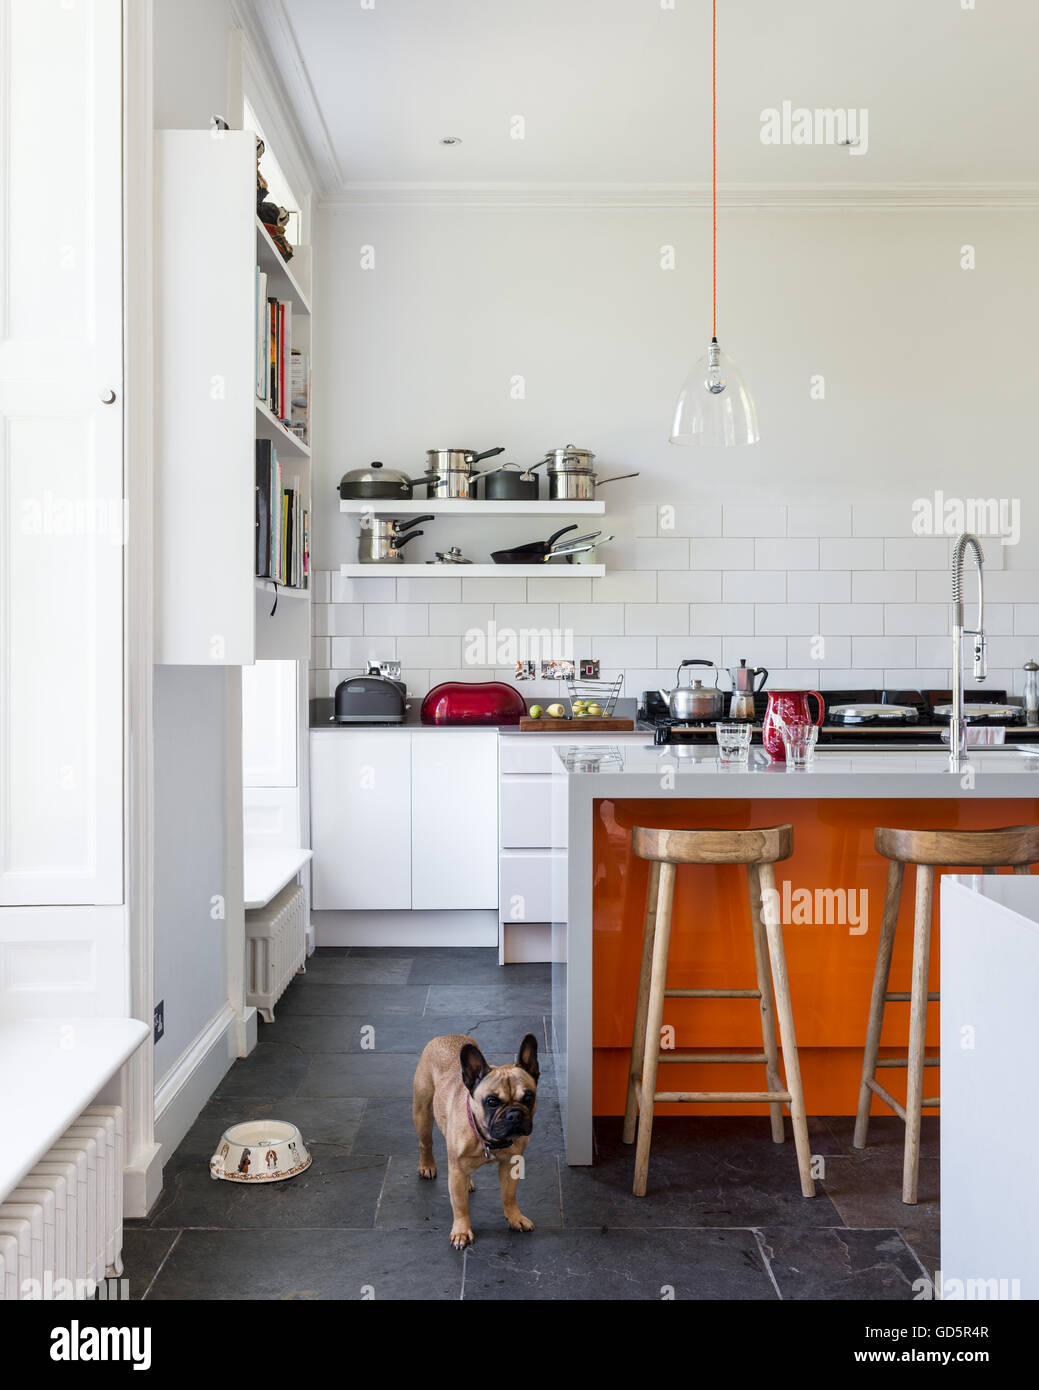 French bulldog in high ceilinged kitchen with white metro tiles and grey riven slate floor. - Stock Image